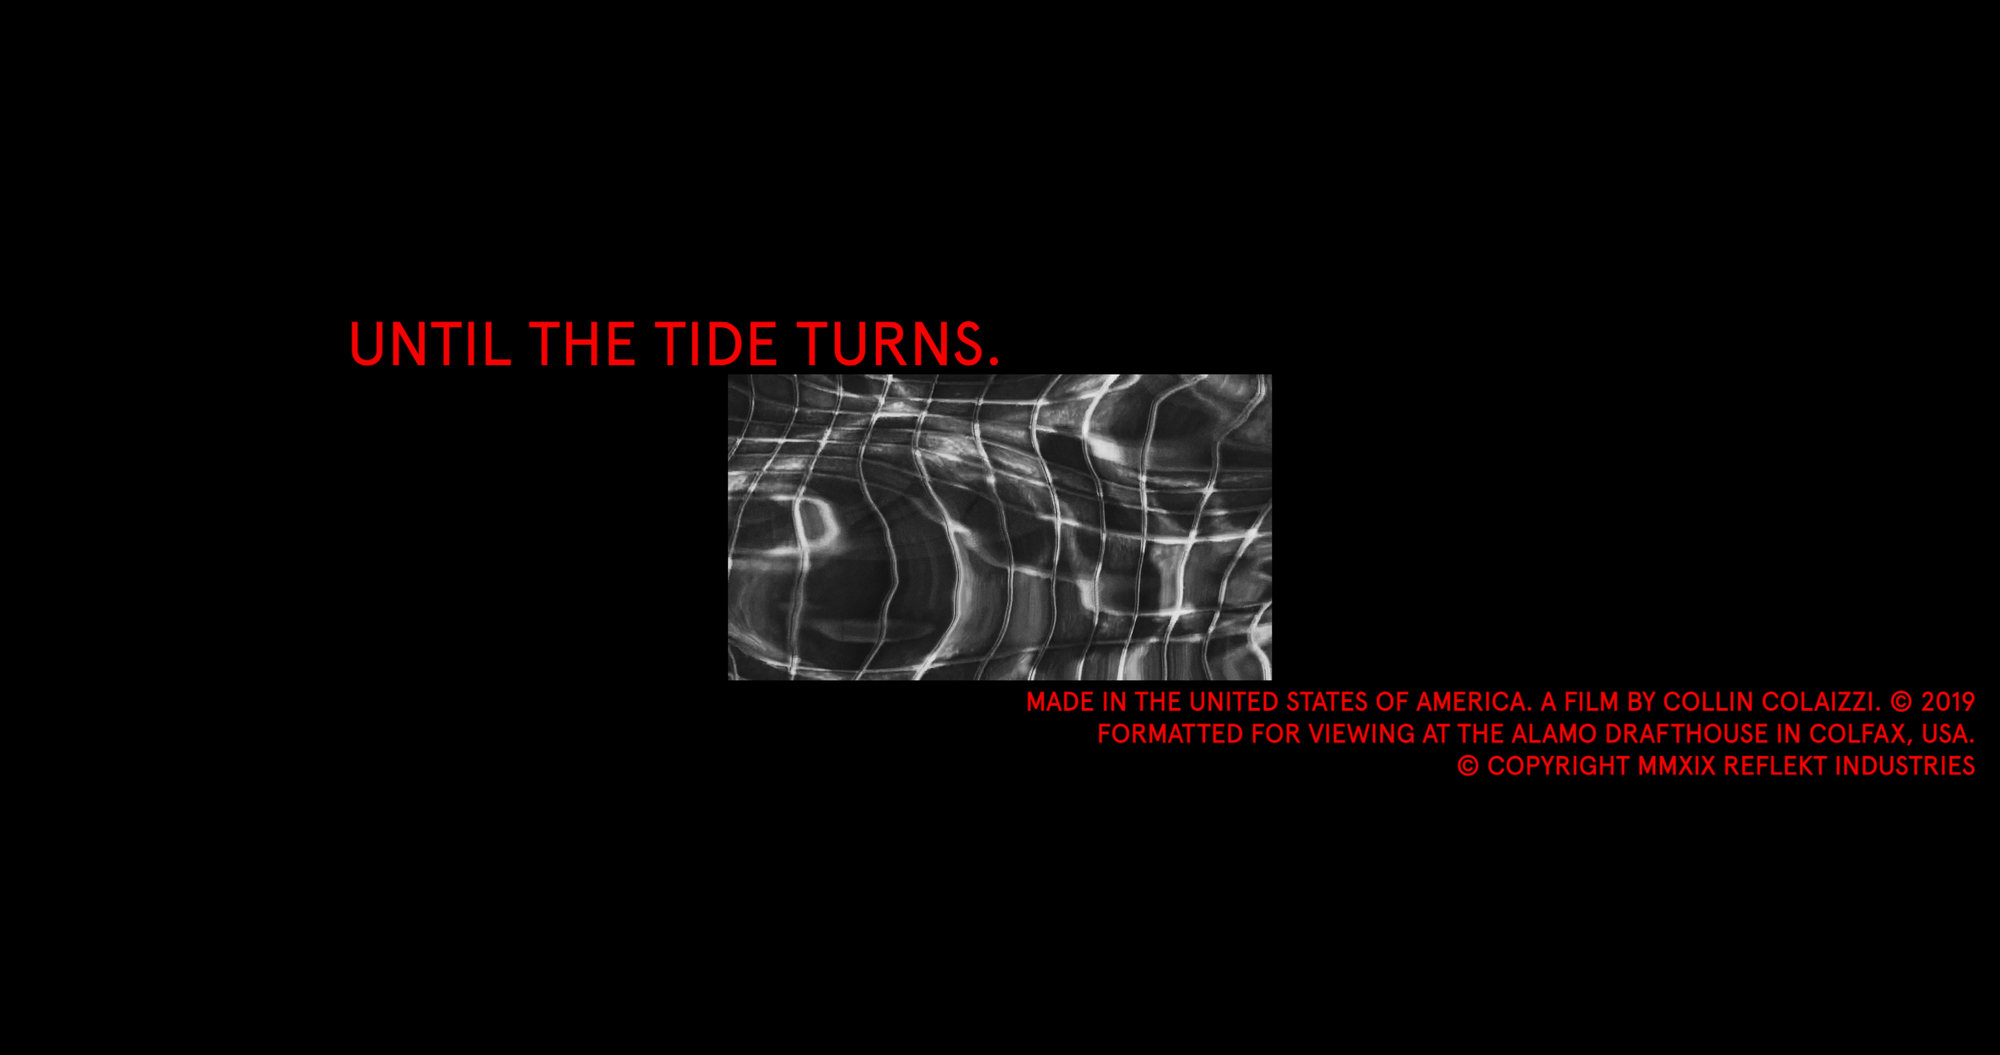 Until the Tide Turns